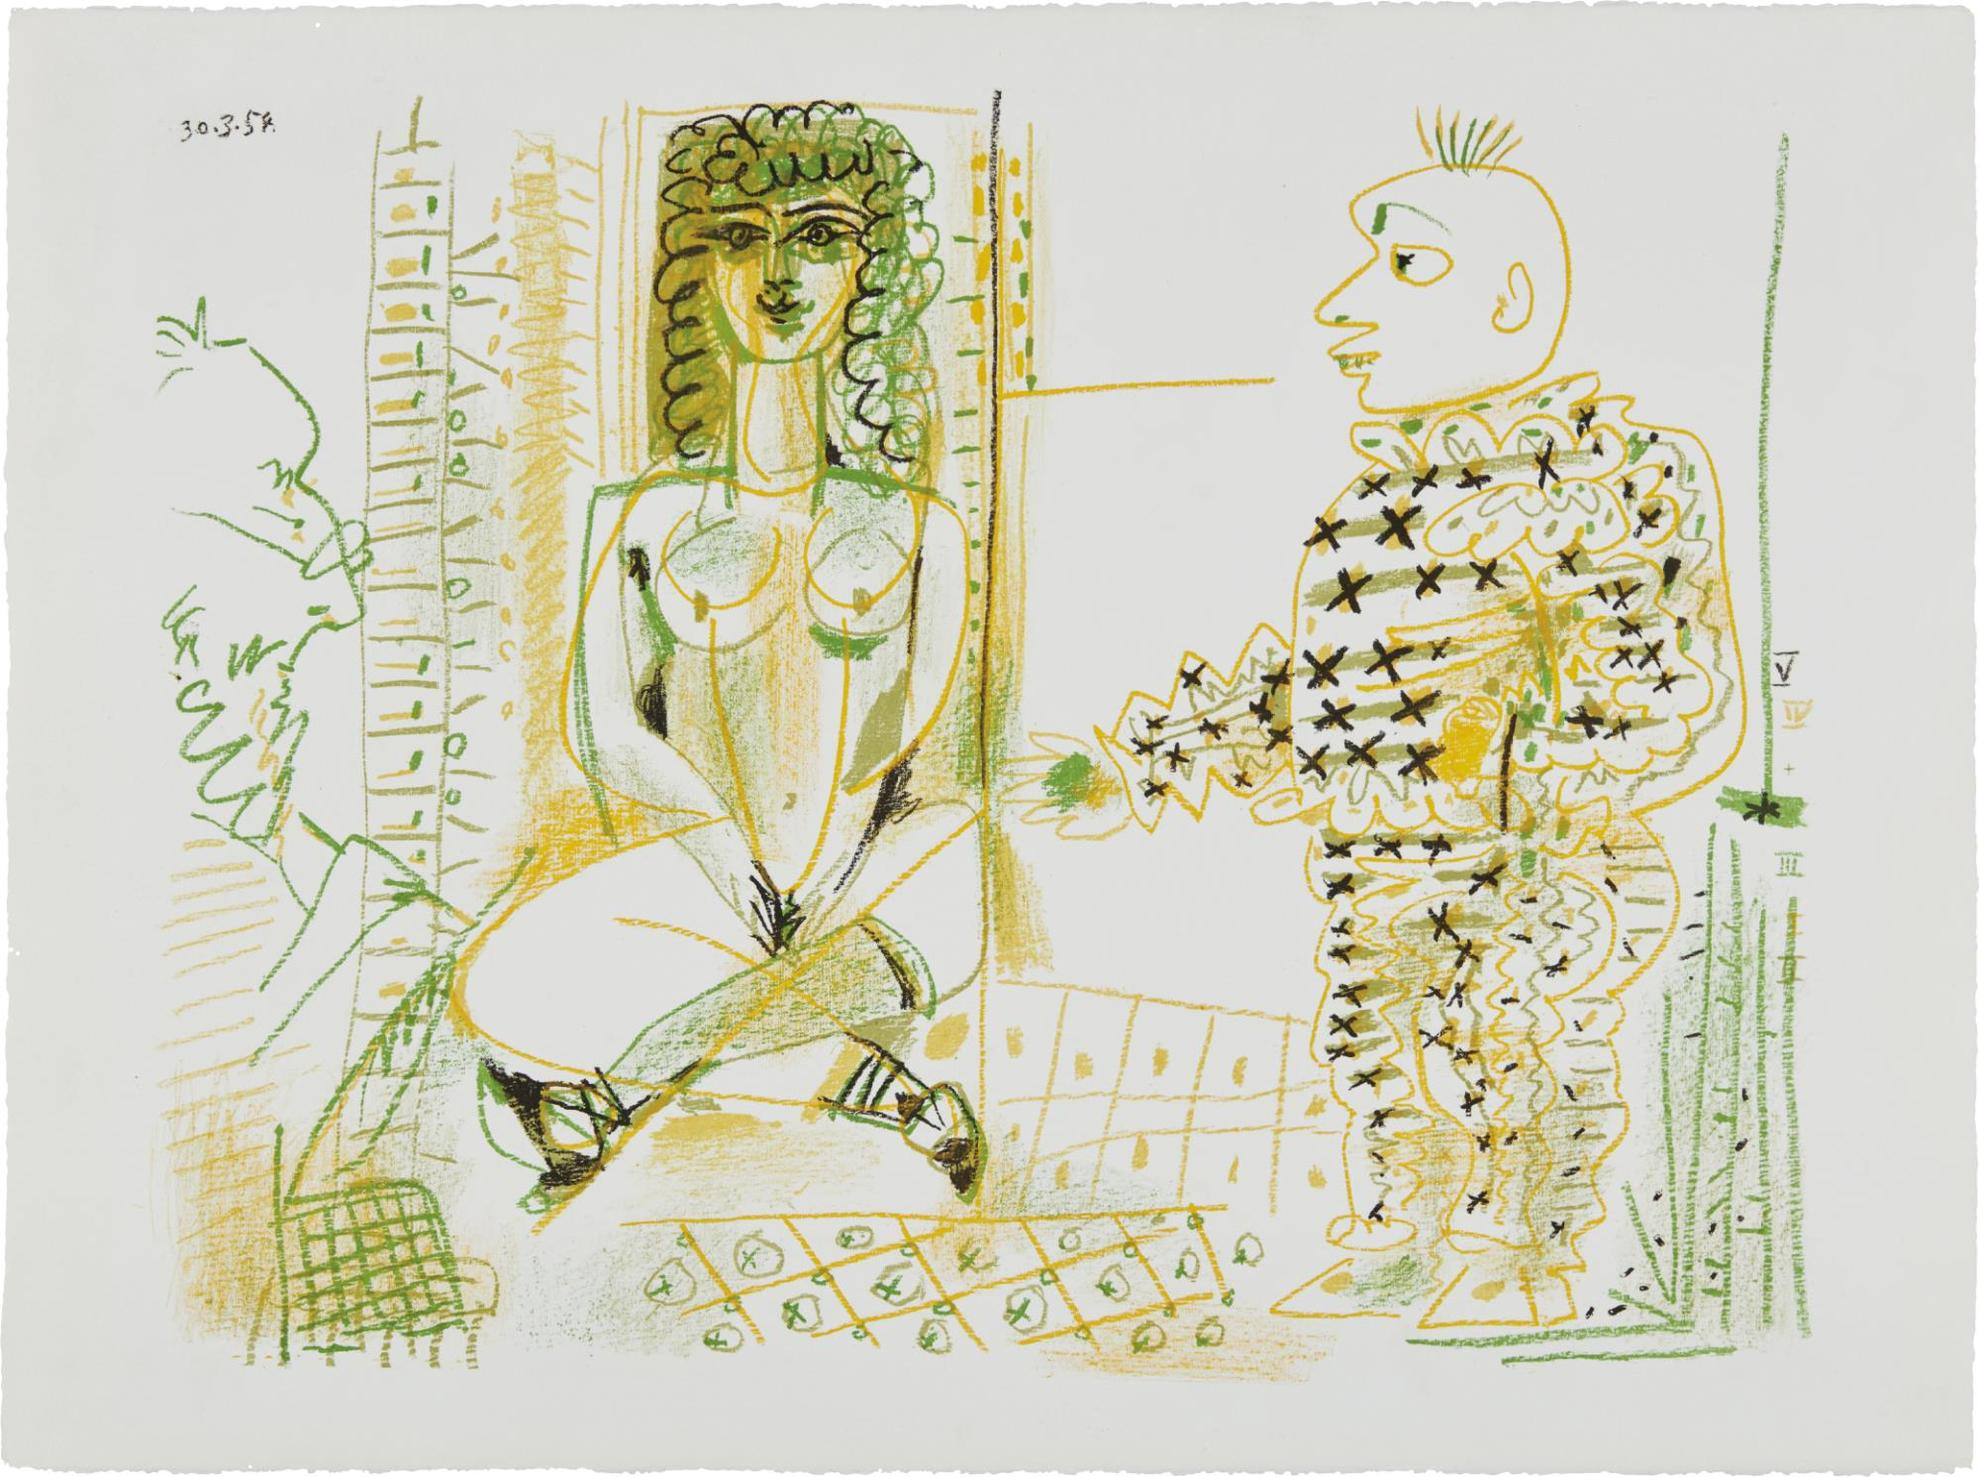 Pablo Picasso-Le Peintre Et Son Modele (The Painter And His Model)-1954